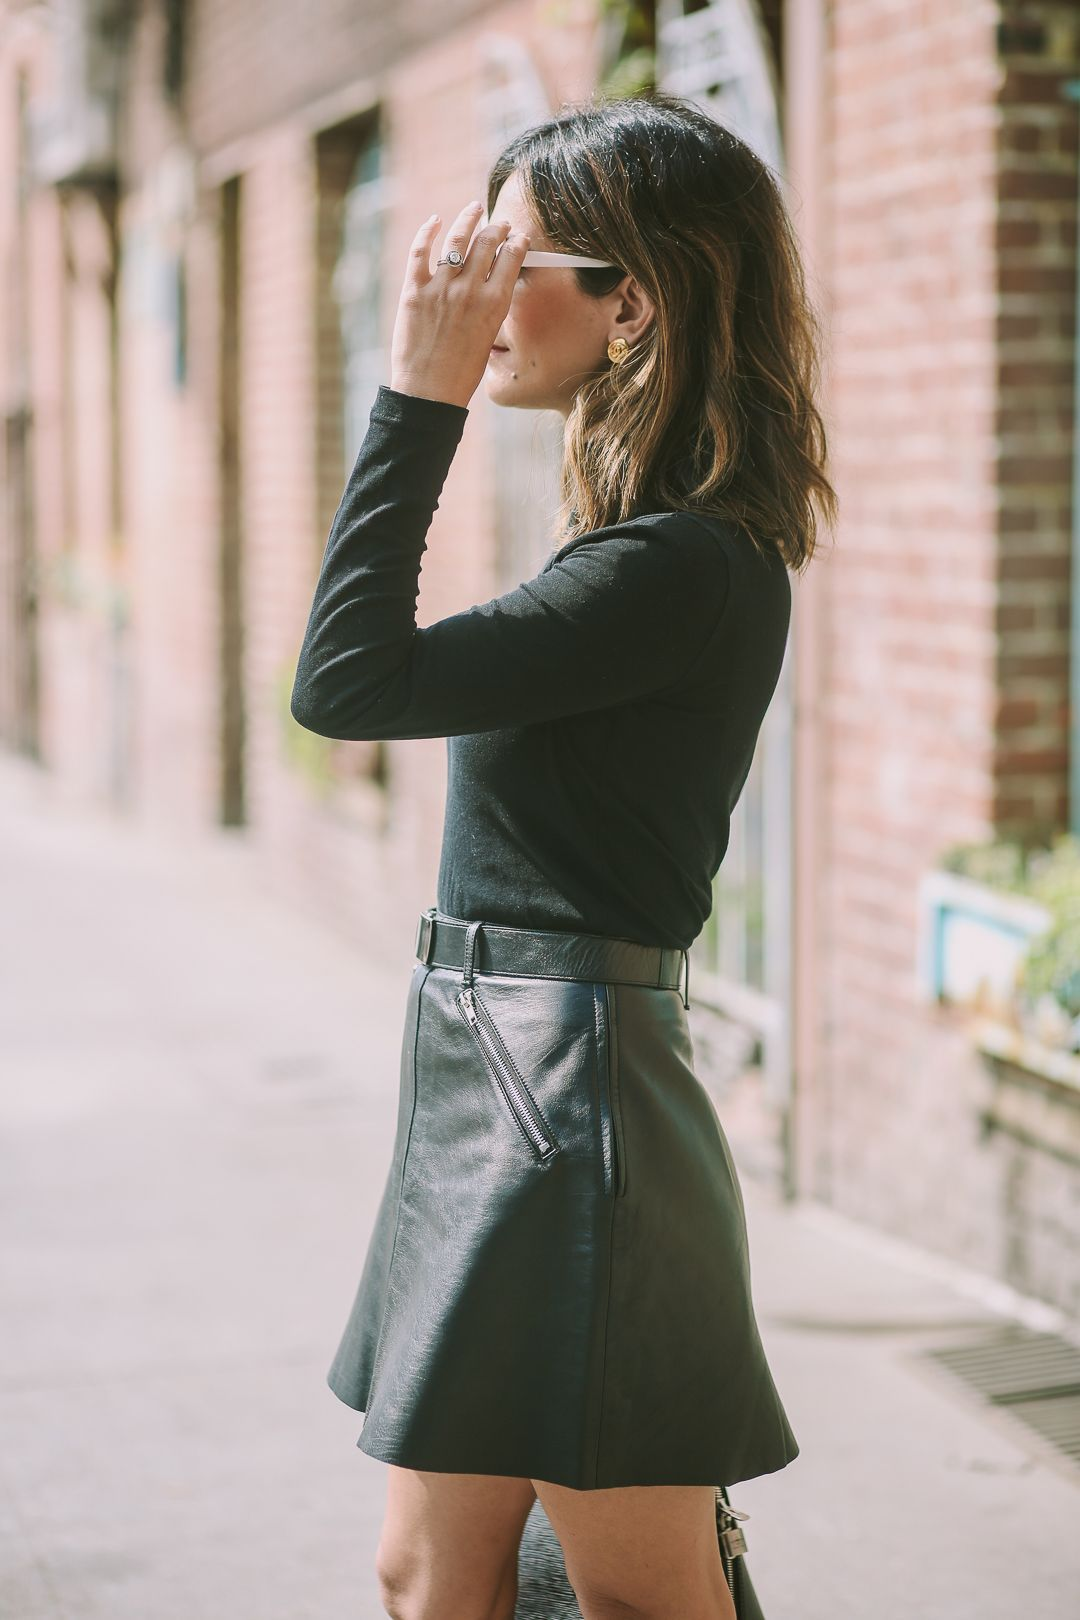 55 Best Modern Vintage Outfit Ideas For